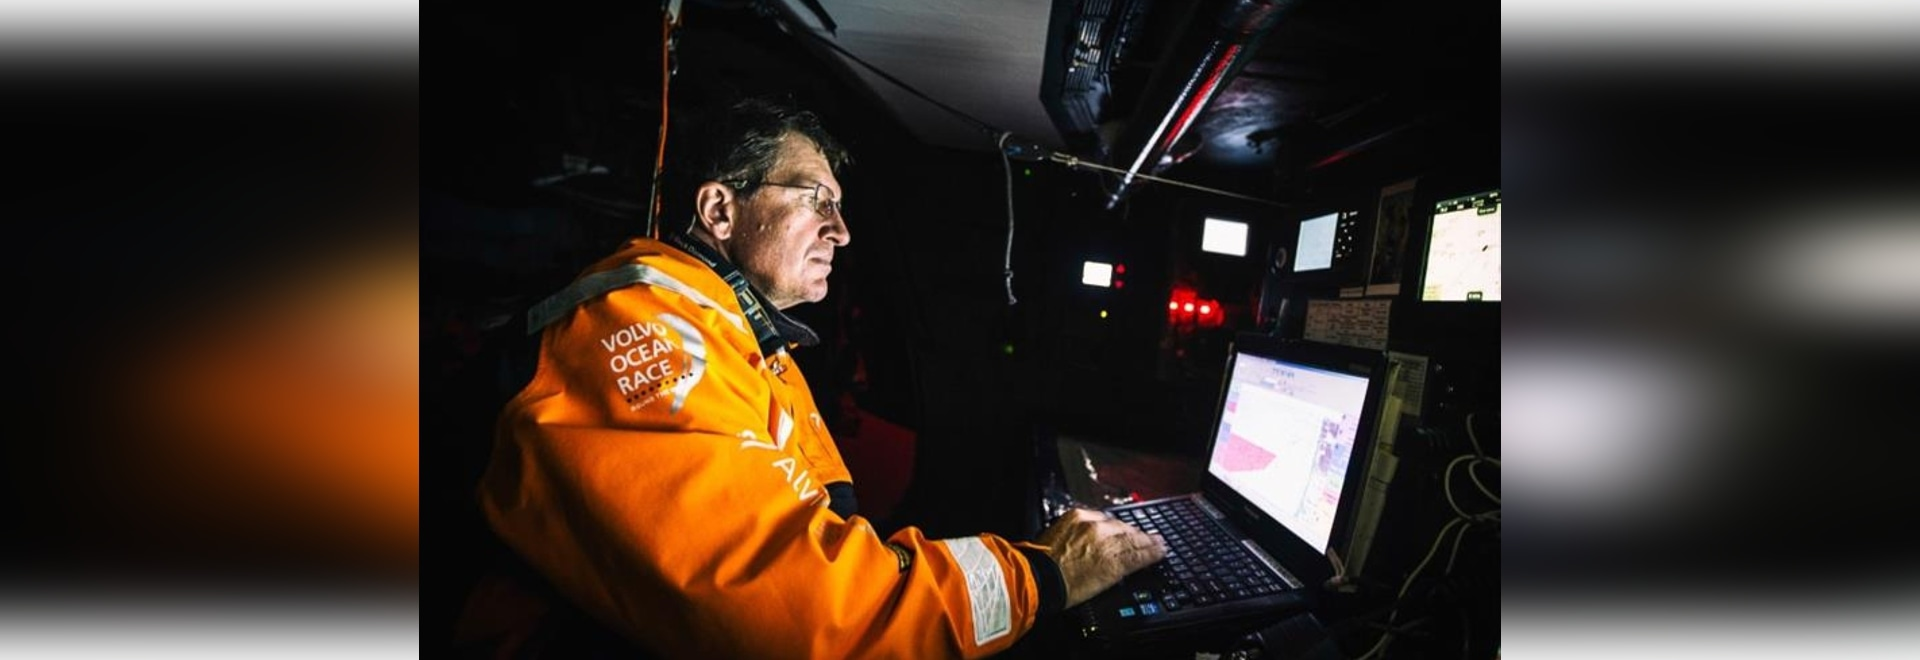 Leg 9 to Gothenburg onboard Team Alvimedica. Day 1. Free from the Bay of Biscay the fleet rounds Brest on the way to the English Channel,all within close proximity. Will Oxley hard at work in the n...